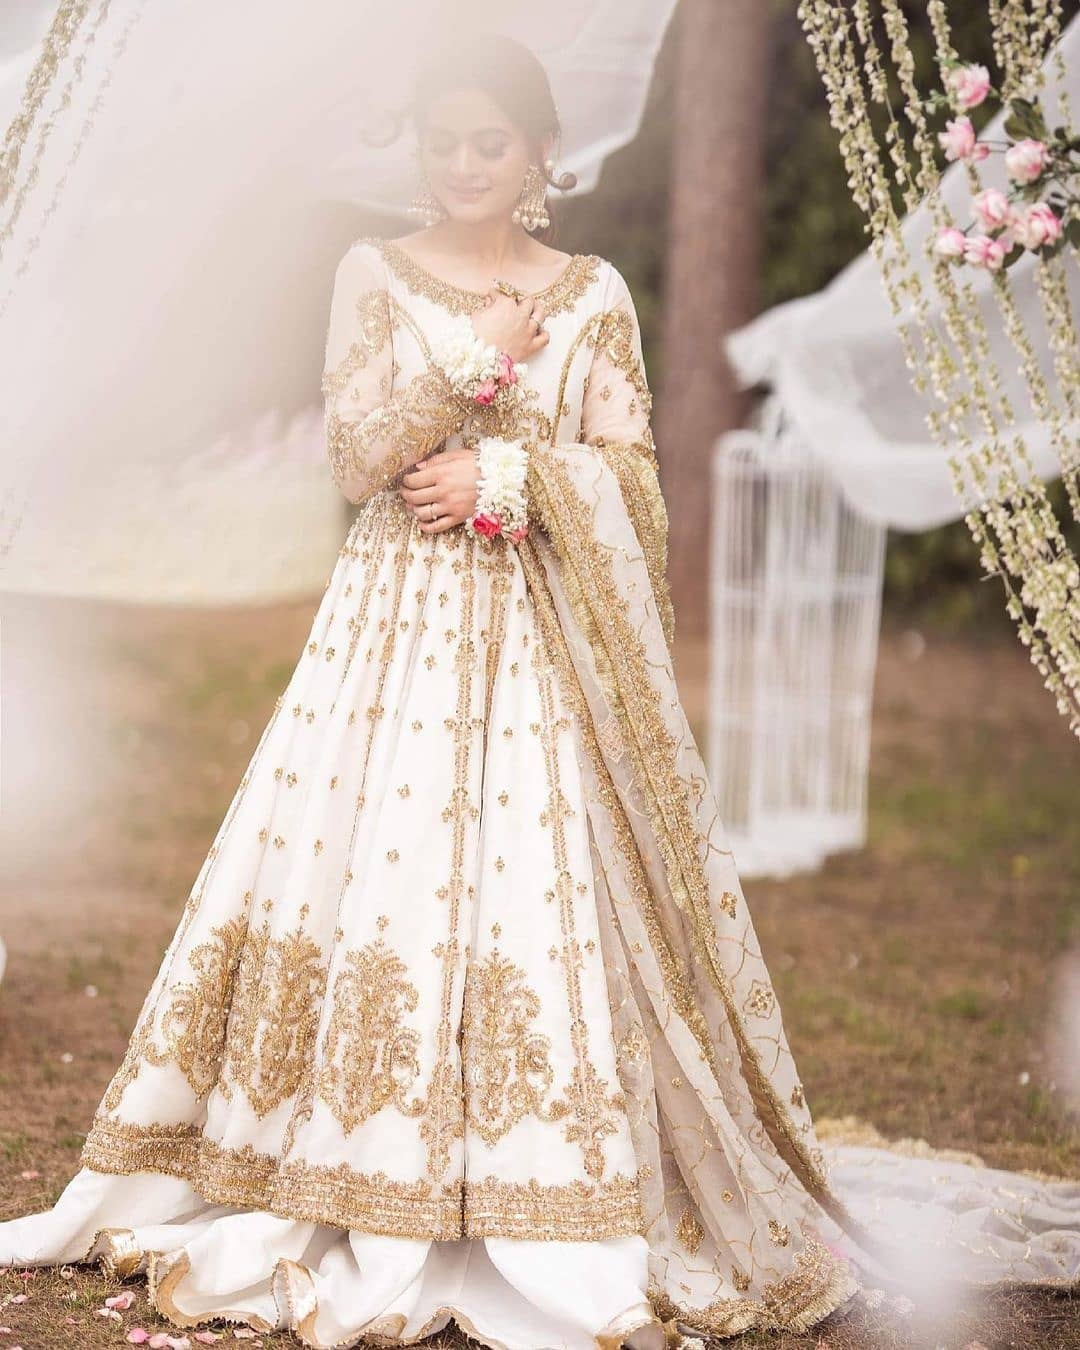 Aiman Khan Looks Drop-Dead Gorgeous in Her Latest Photoshoot!